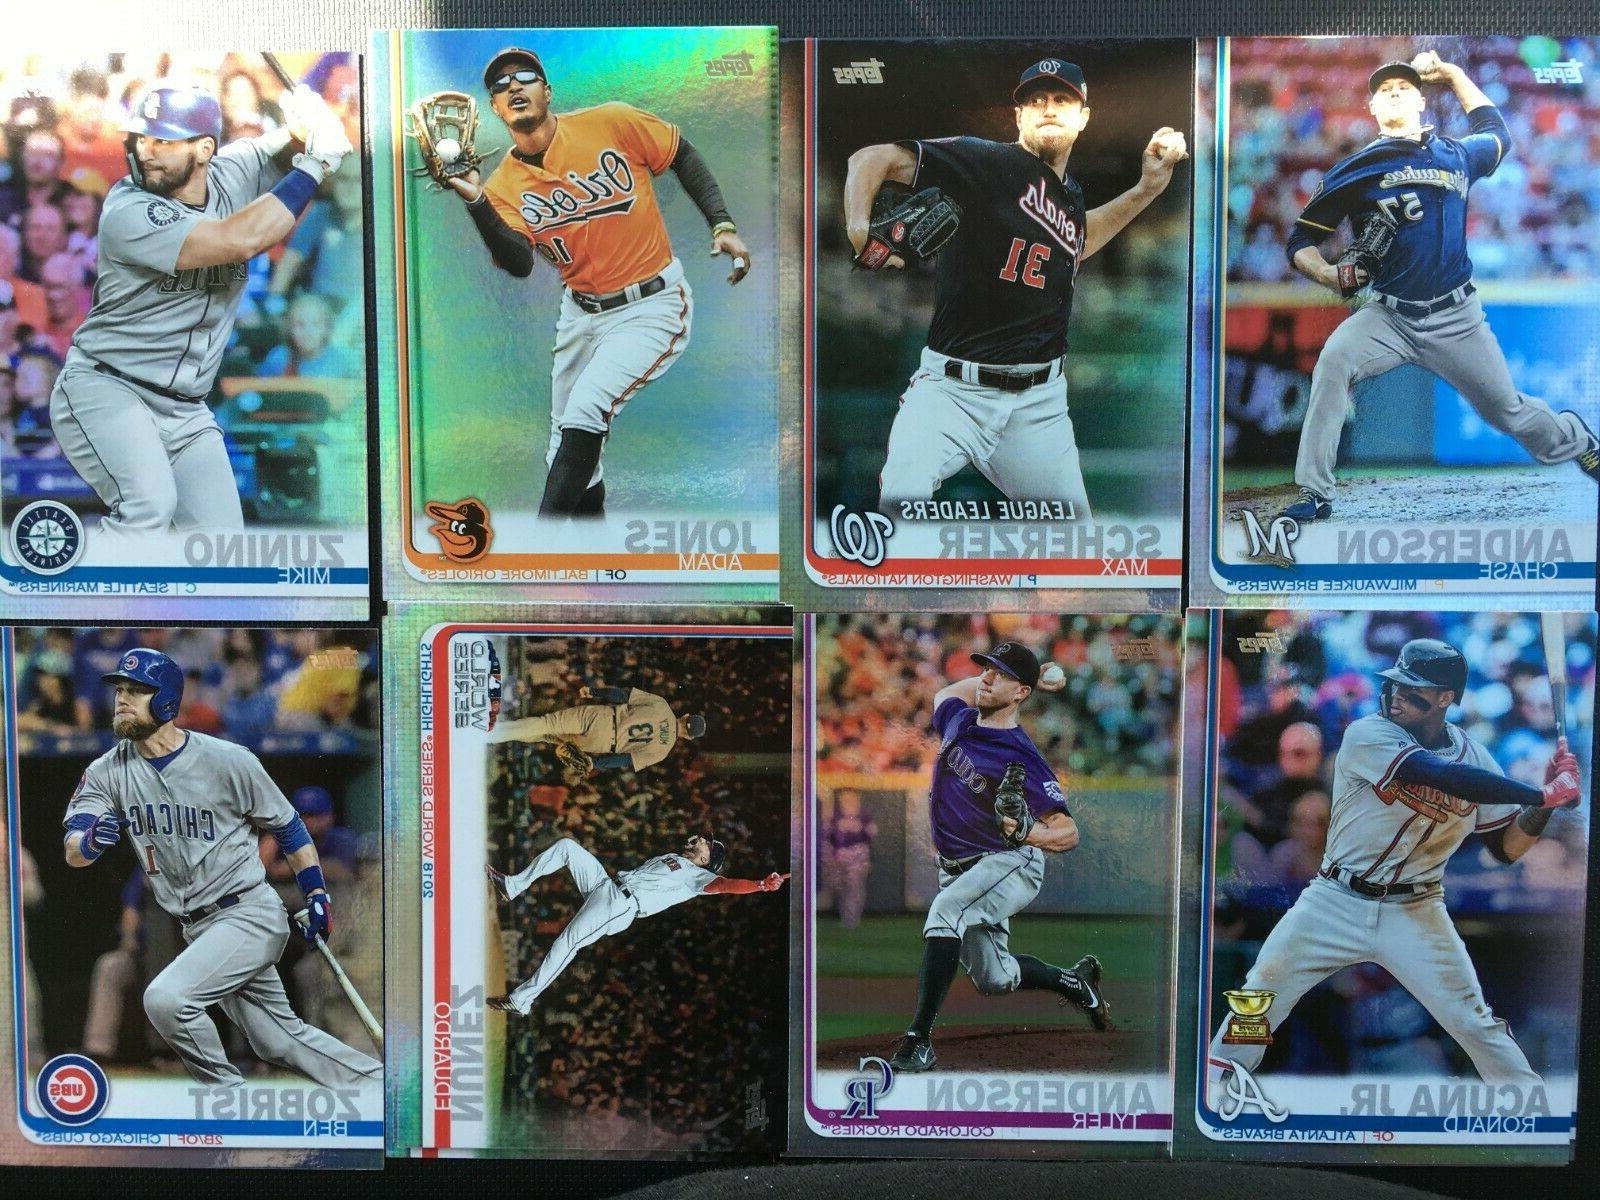 2019 topps series 1 rainbow foil parallel